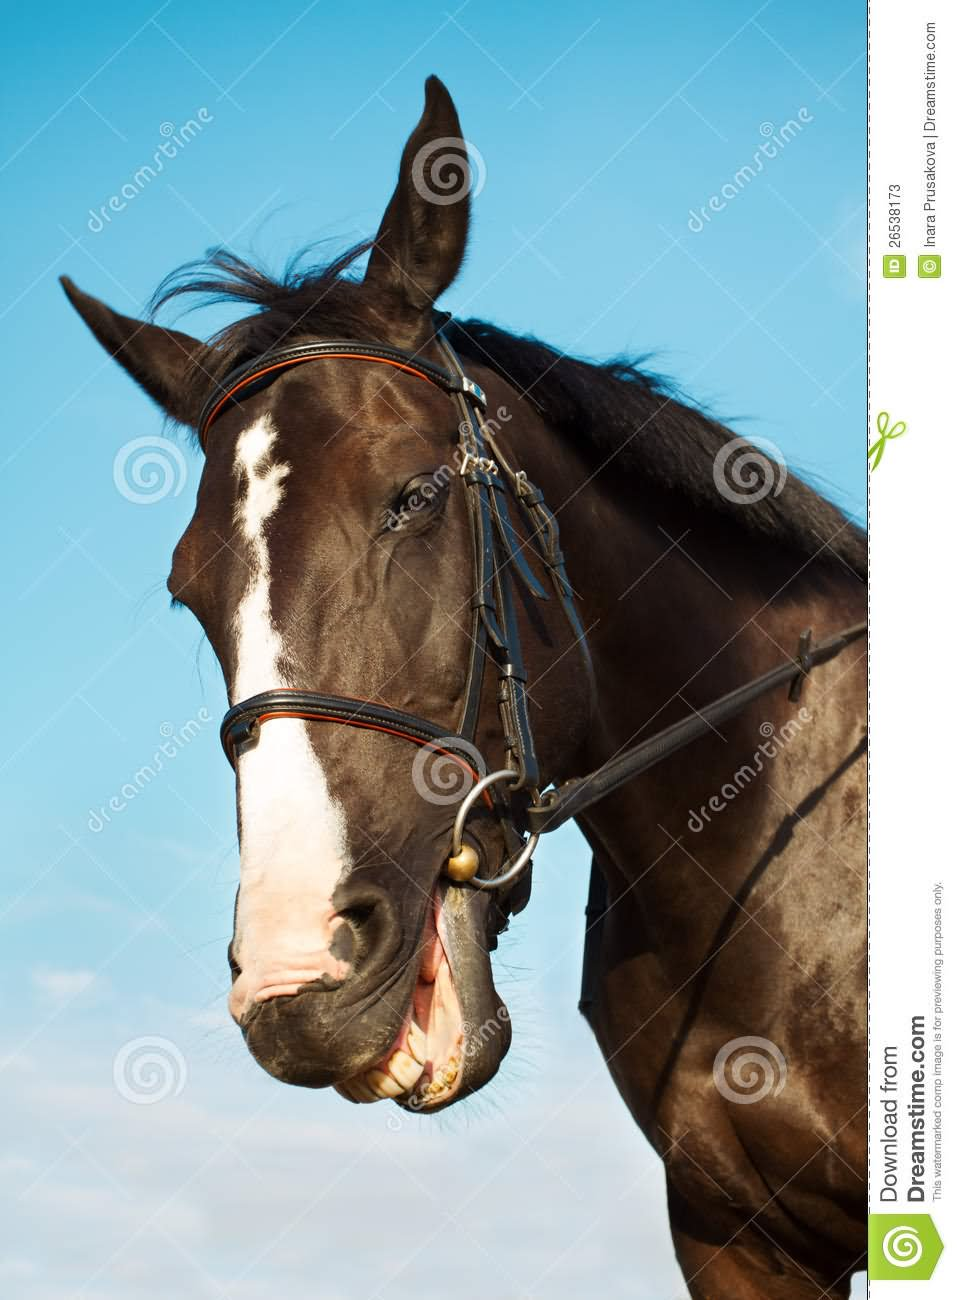 Funny Horse Smiling Face Image